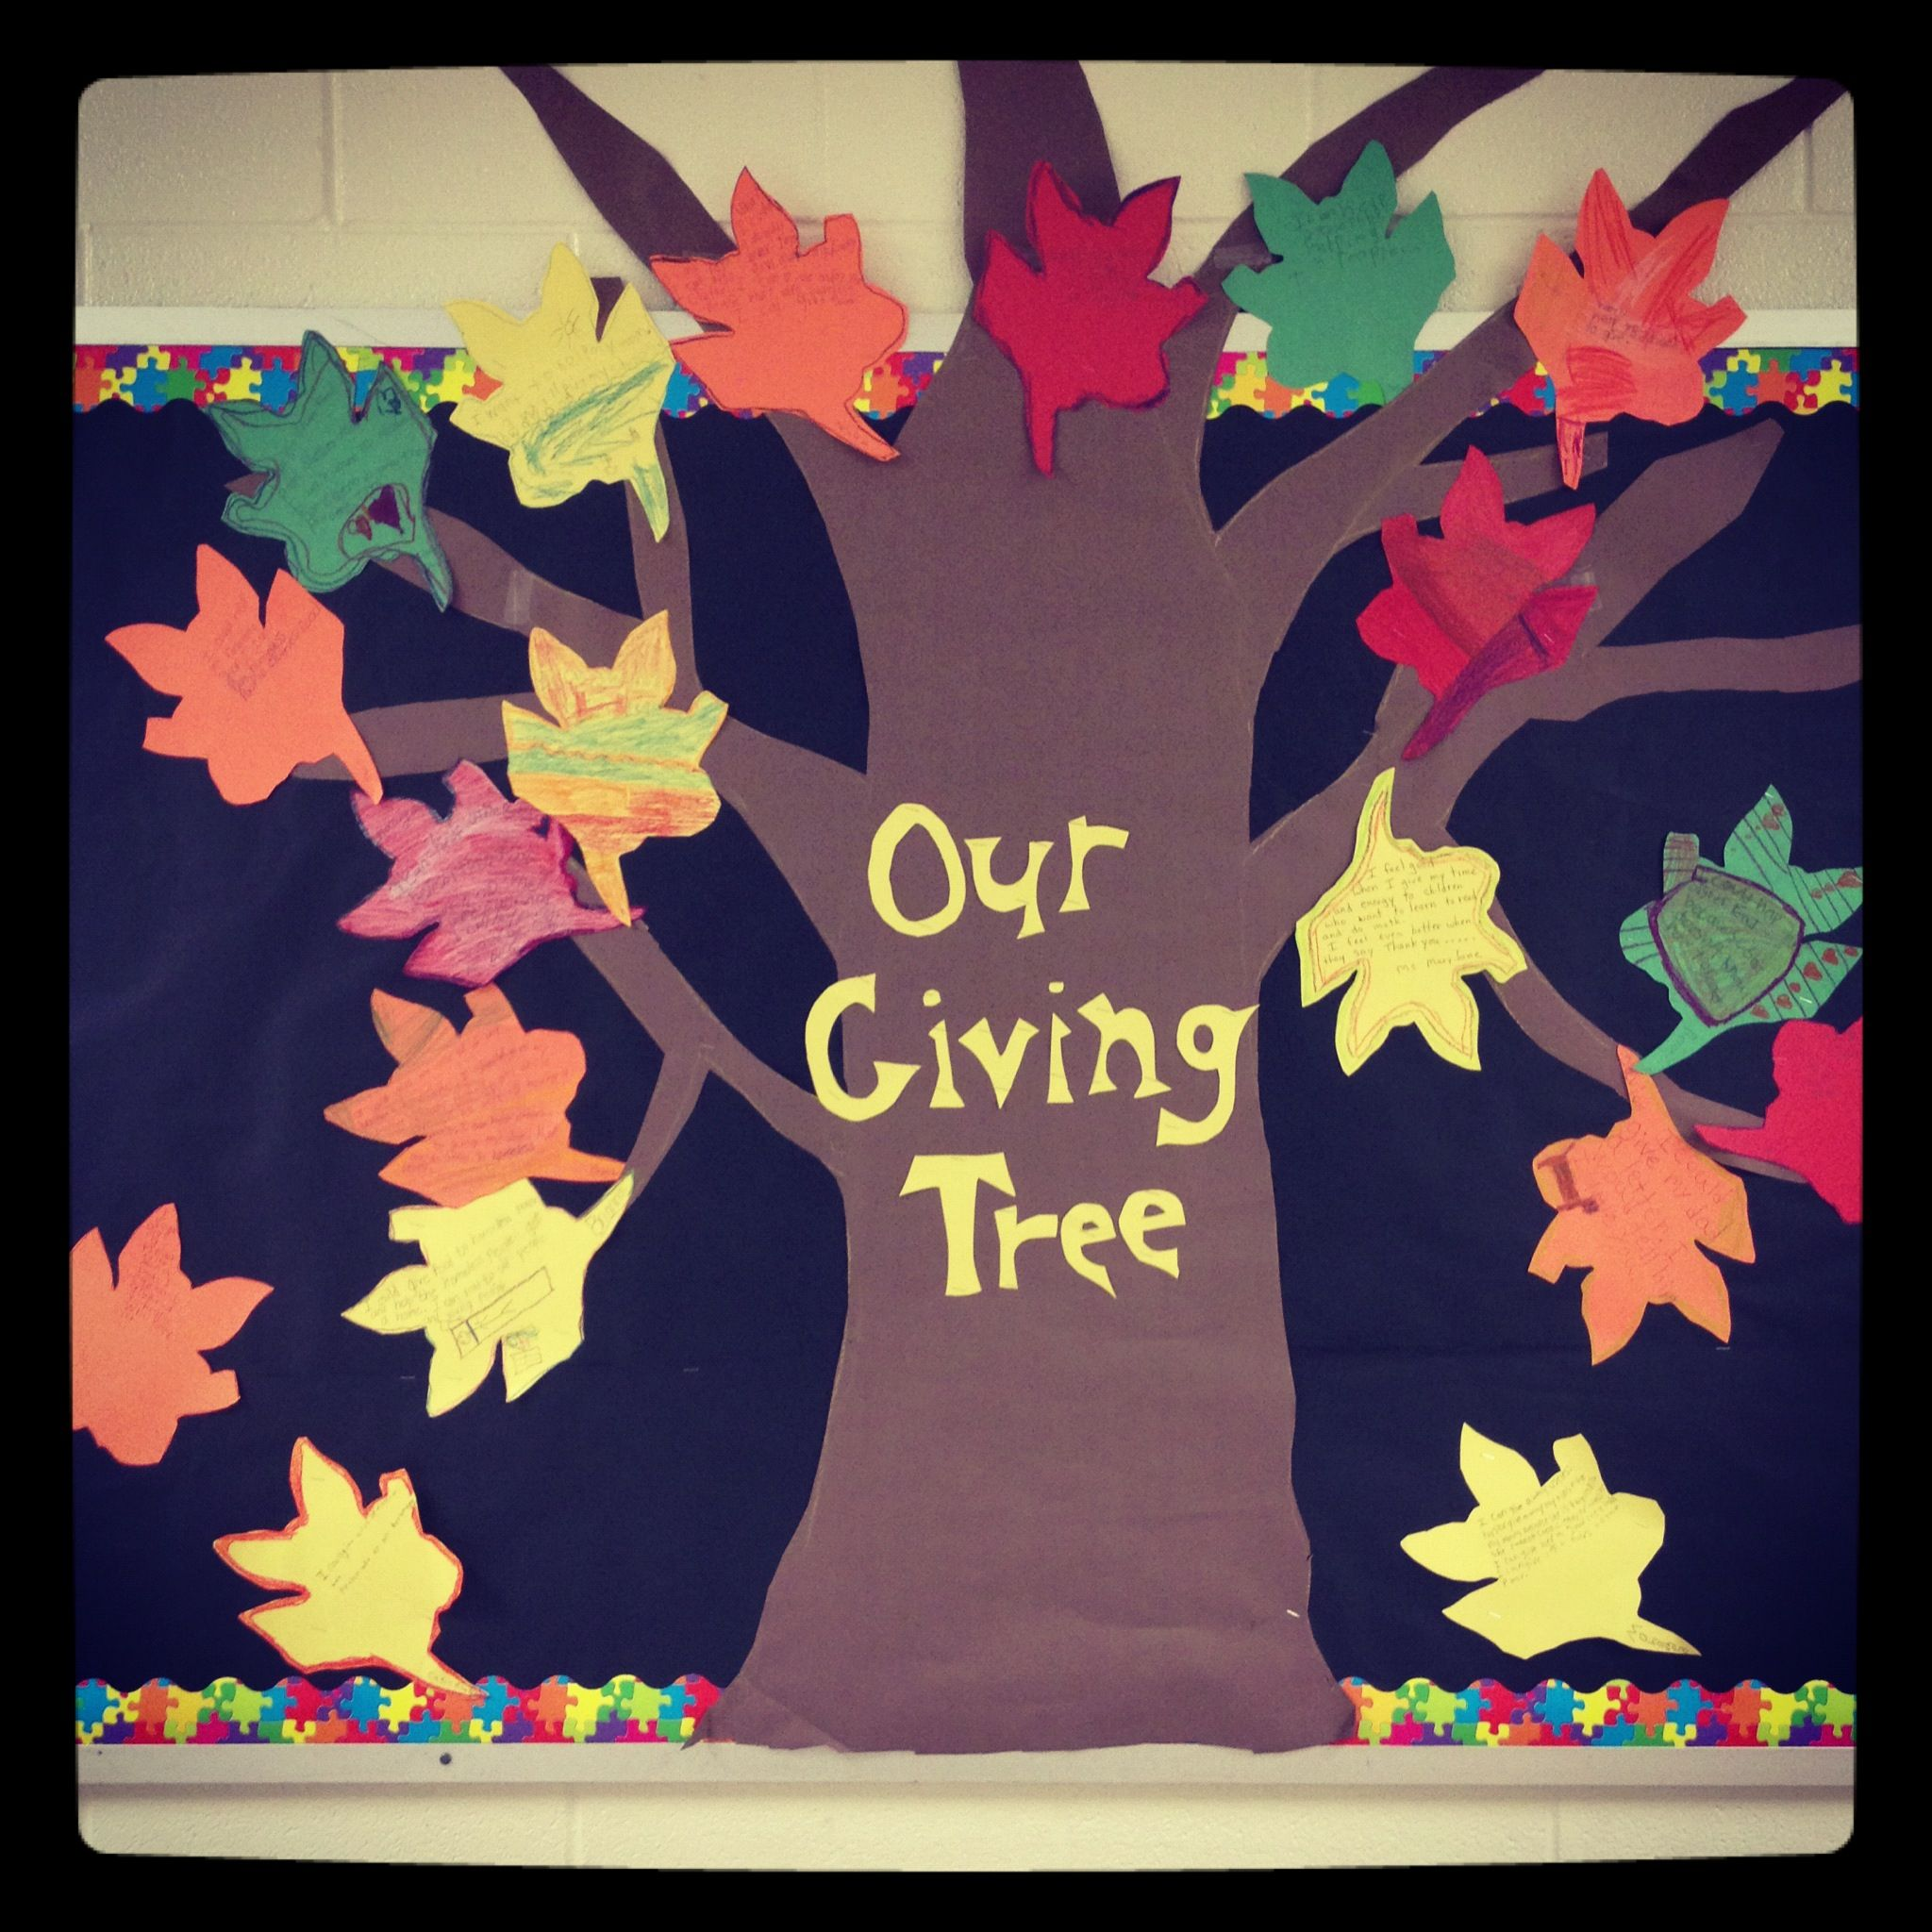 Our Giving Tree Based On The Shel Silverstein Book The